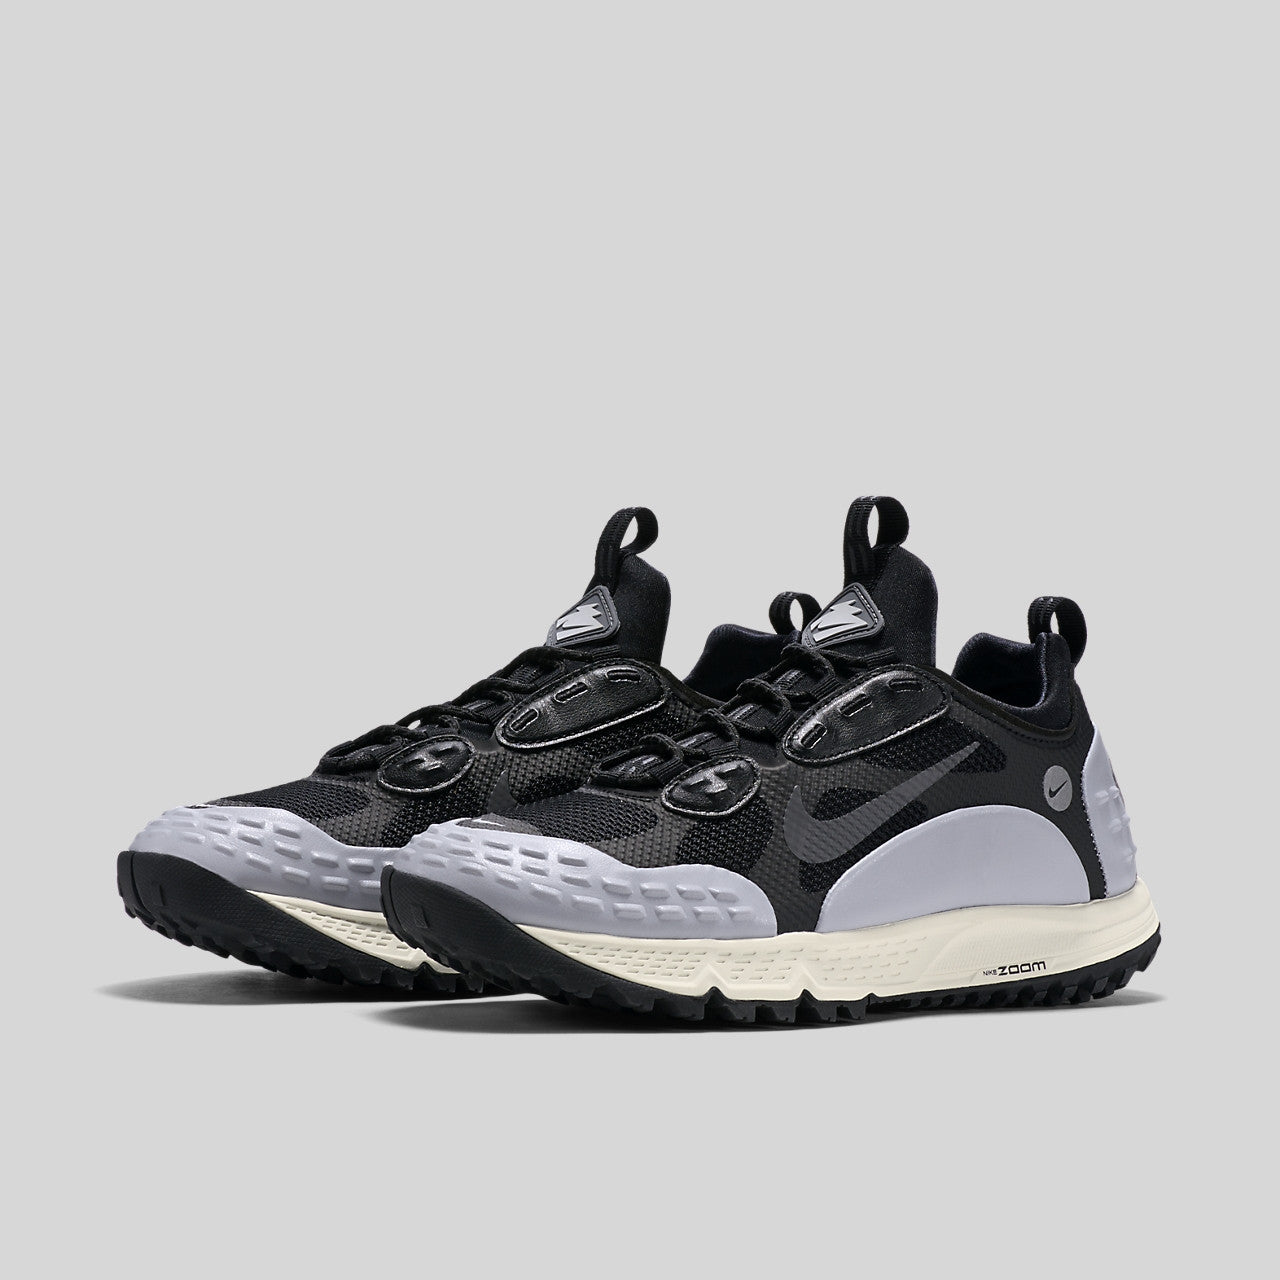 check out 82f3b 18155 Nike Air Zoom Albis 16 Black Light Anthracite